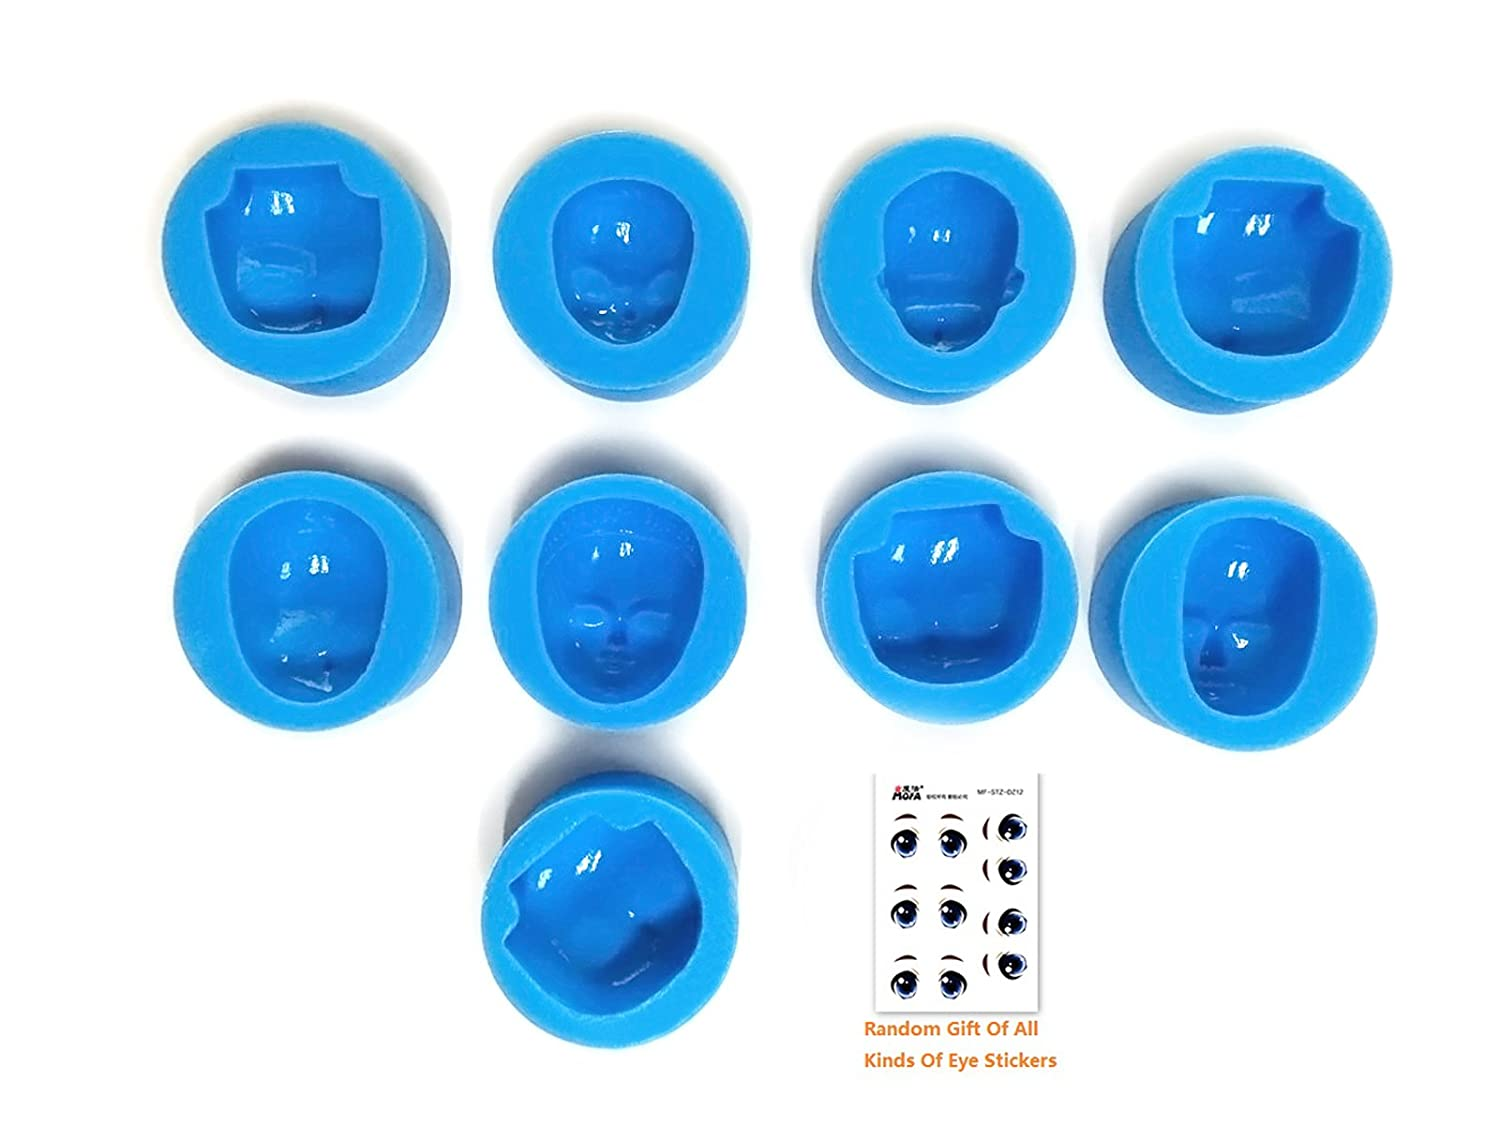 mofa 16 PCS of Set Human Face Shaped 3D Silicone Cake Fondant Mold, Cake Decoration Tools, Soap, Candle Moulds,Fondant, Polymer Clay, Soap Making,Crafting Projects (Small Size) 4336840941